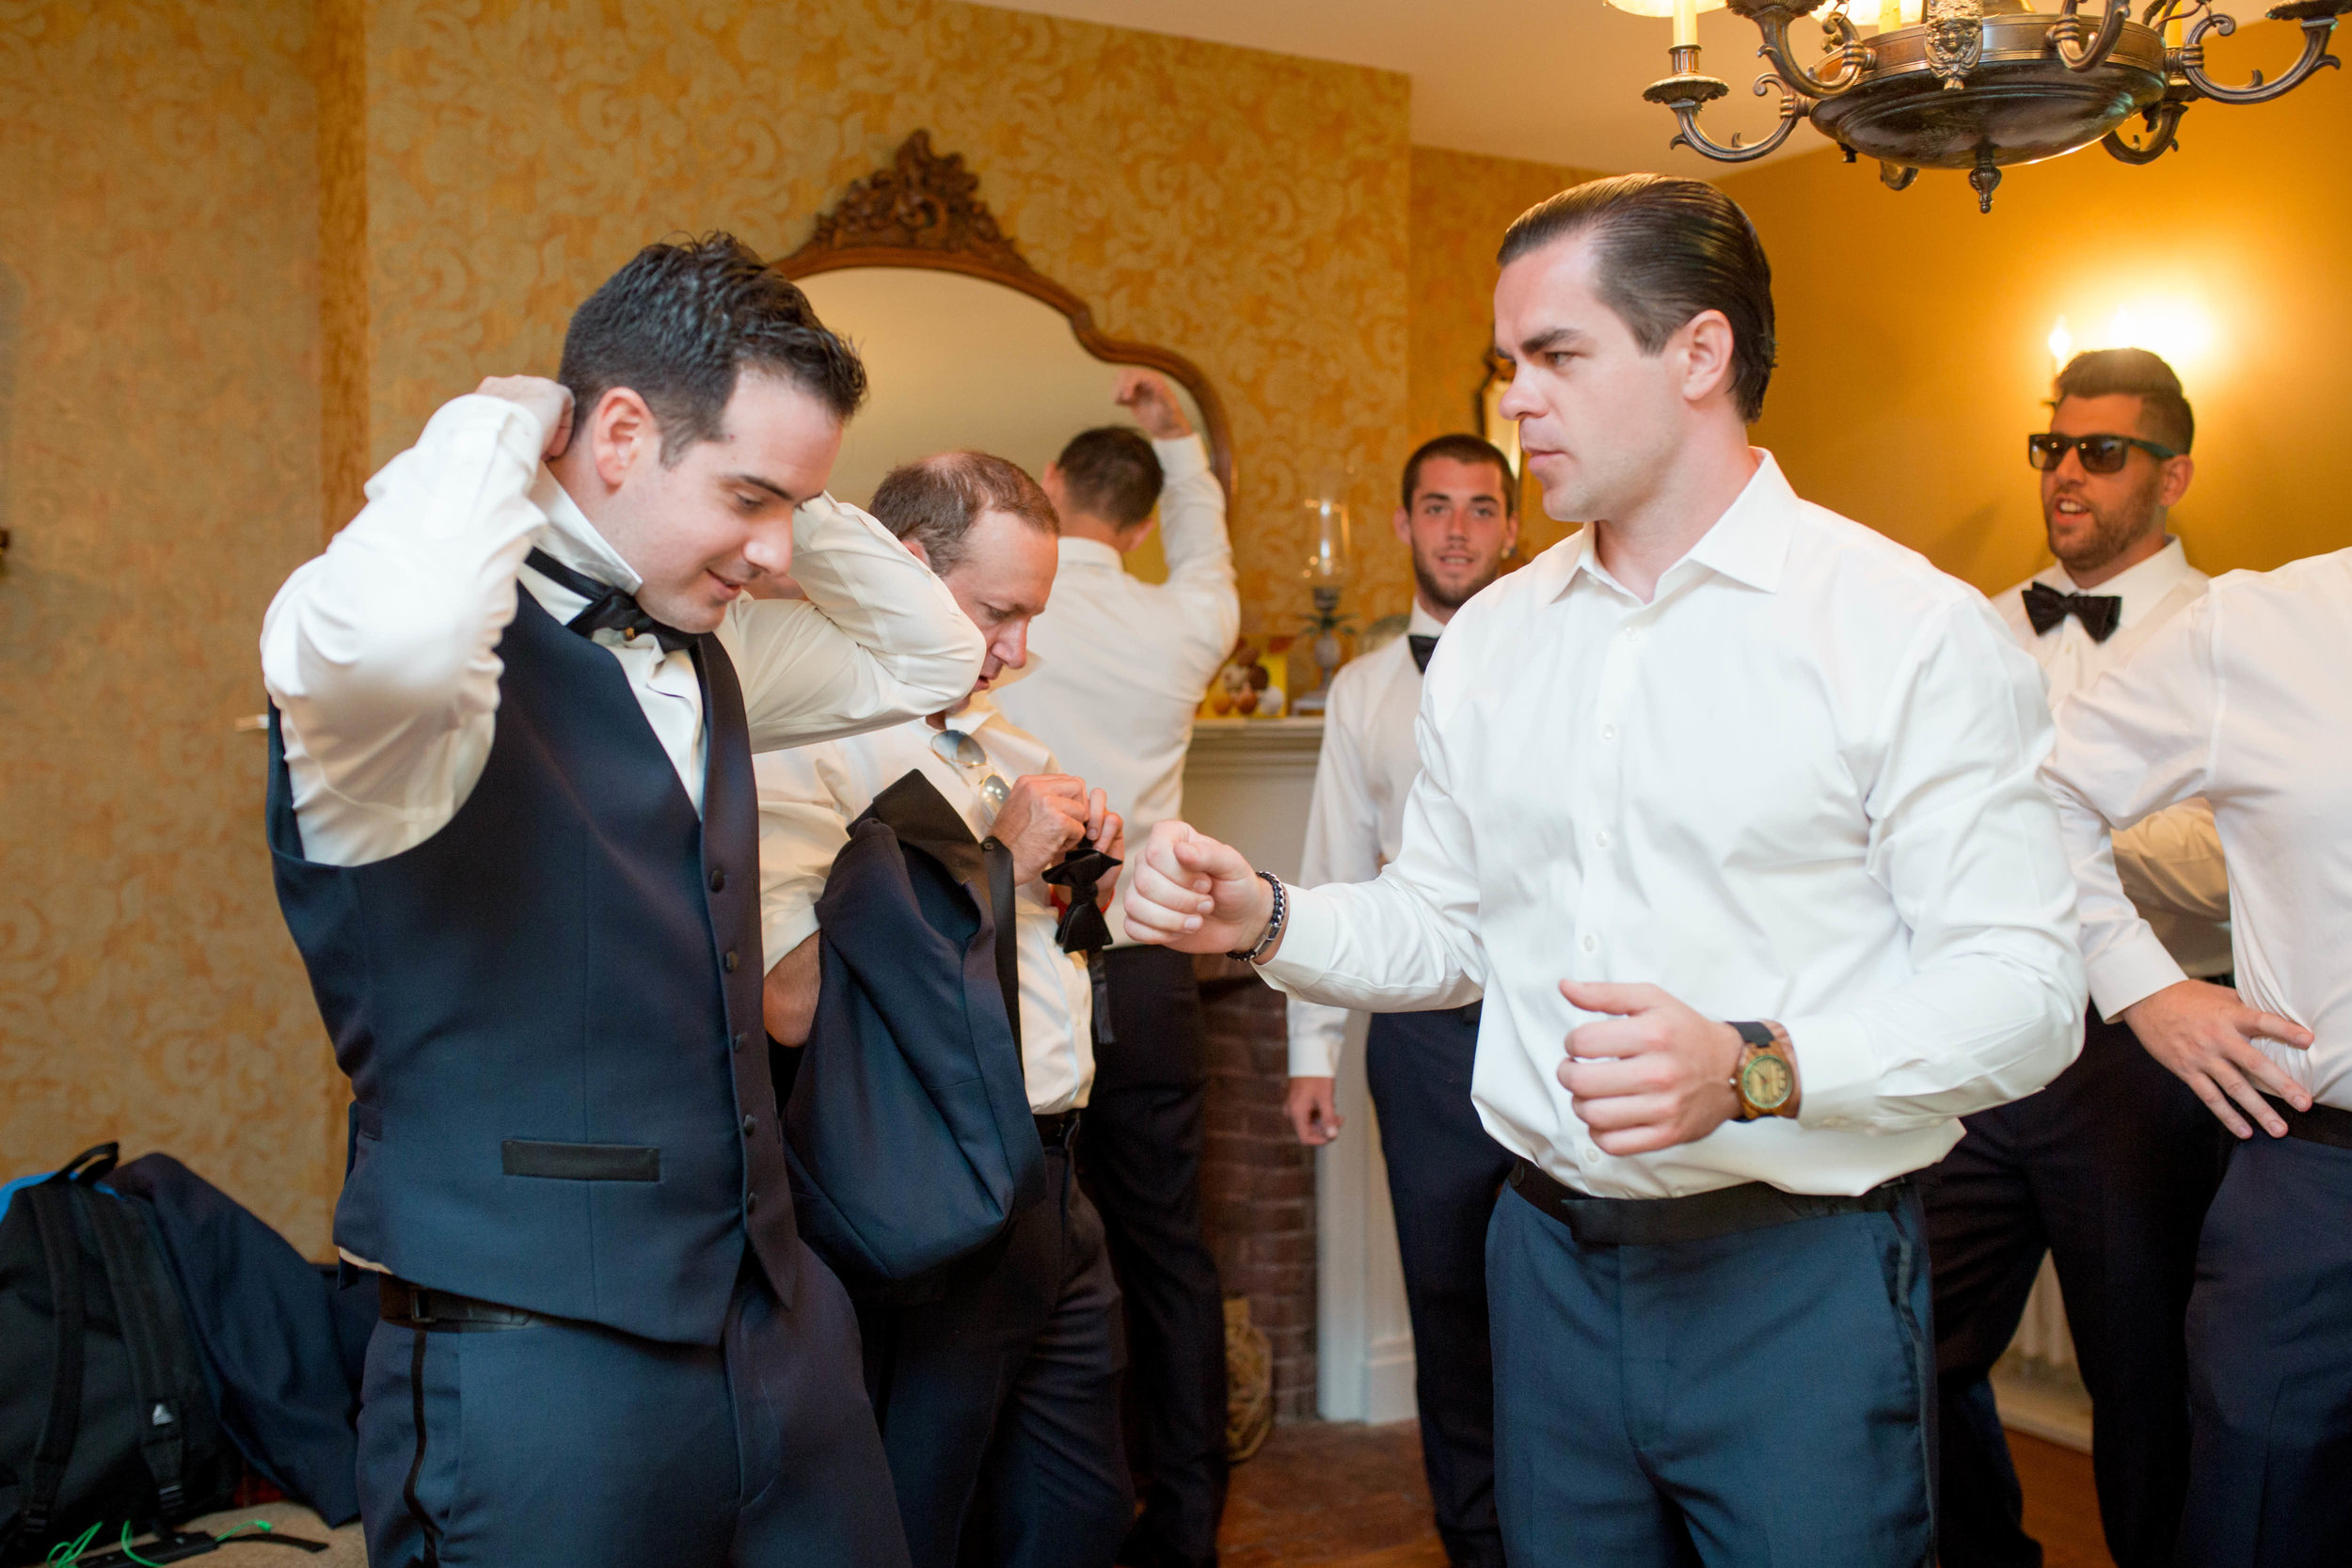 Ashley___Zac___Daniel_Ricci_Weddings___High_Res._Finals_61.jpg